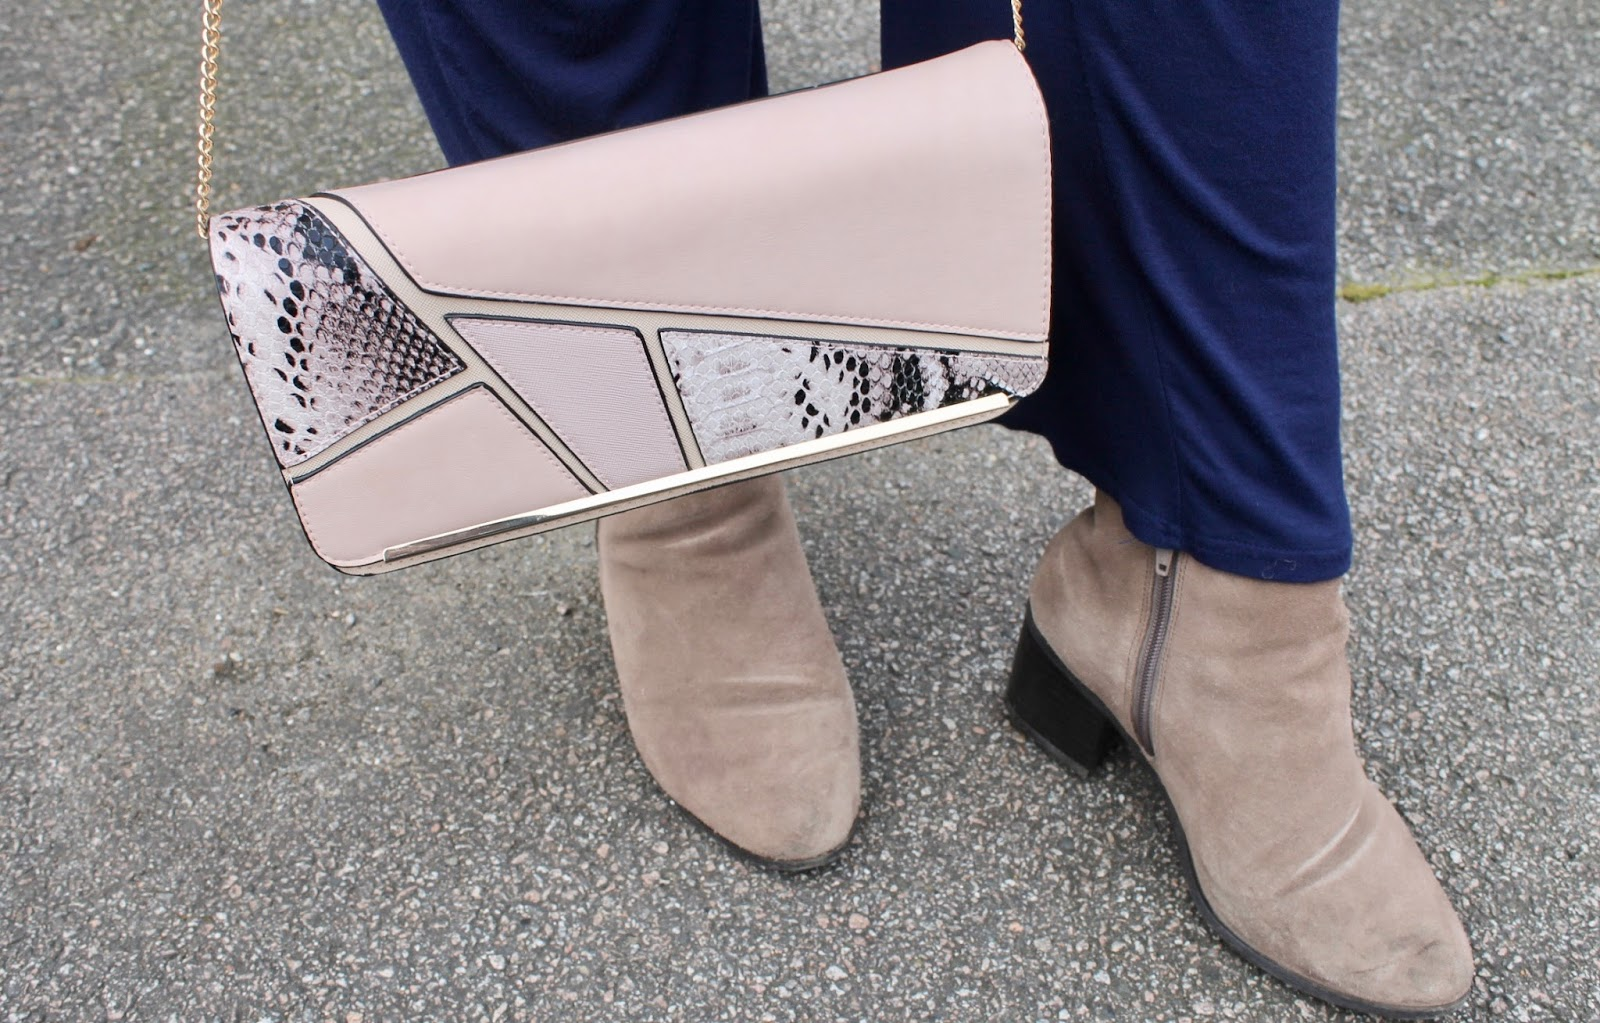 Pastel Handbags and Nude Boots